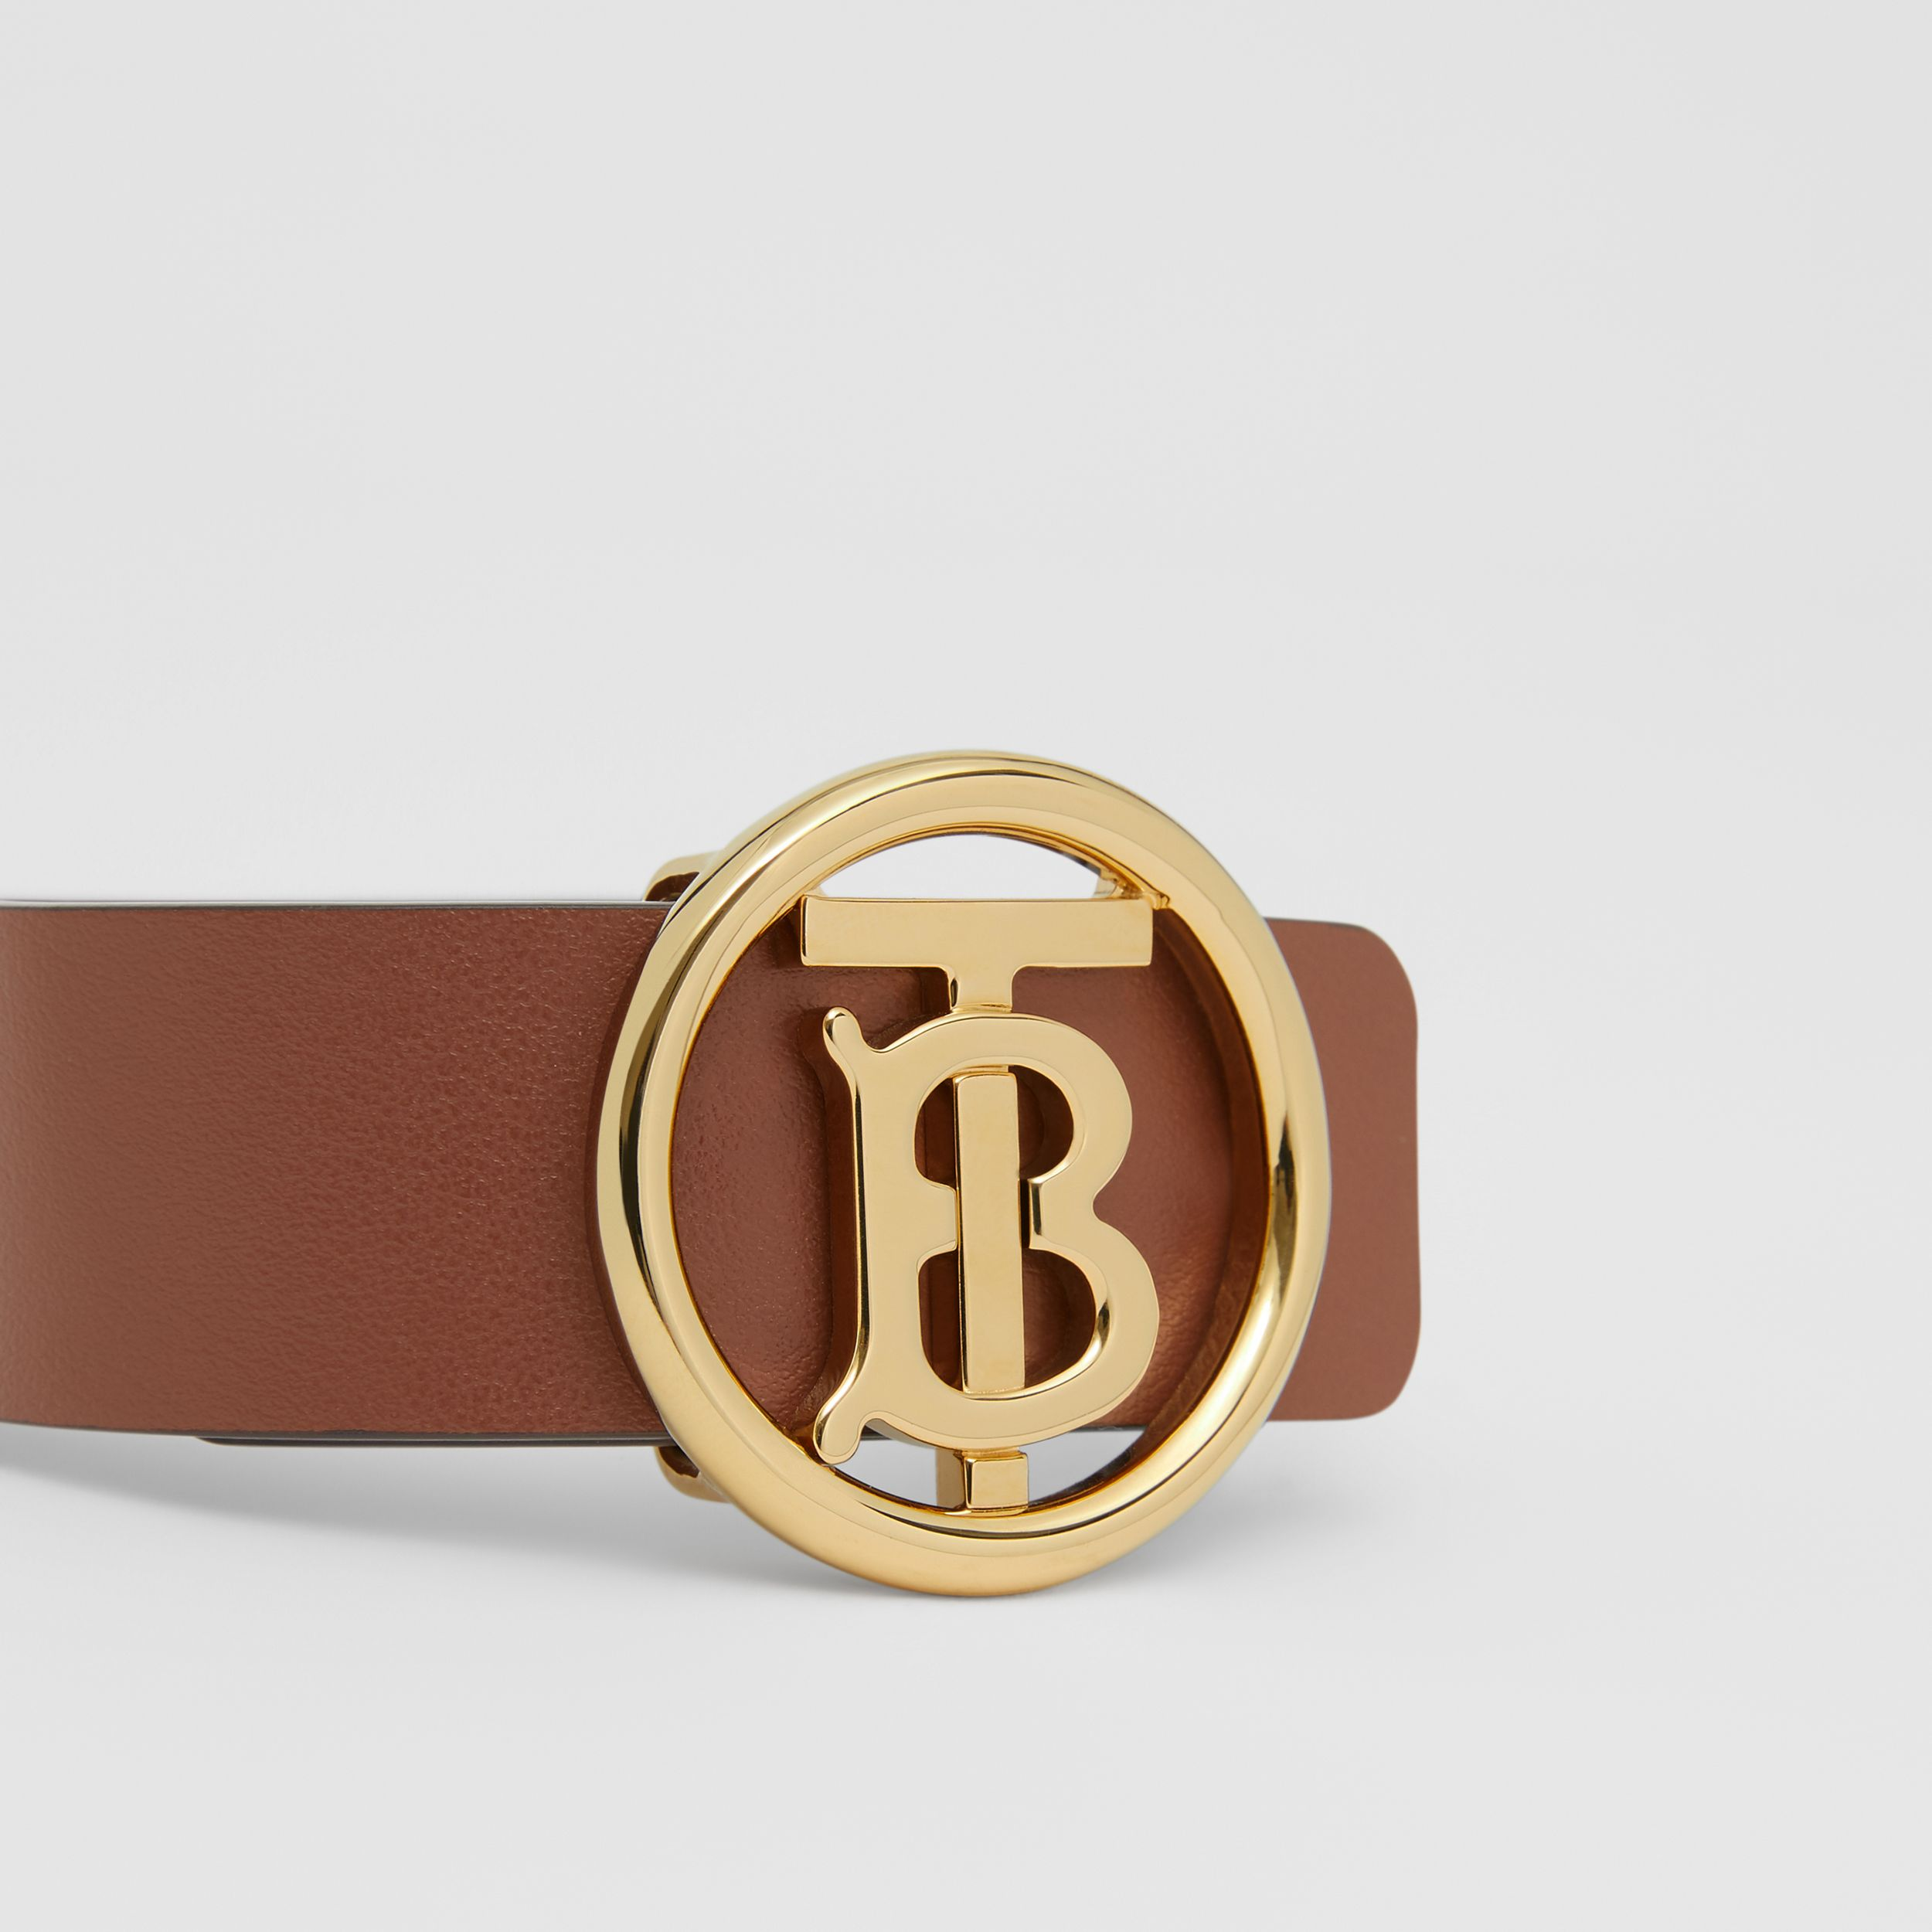 Monogram Motif Leather Bracelet in Tan - Women | Burberry - 2